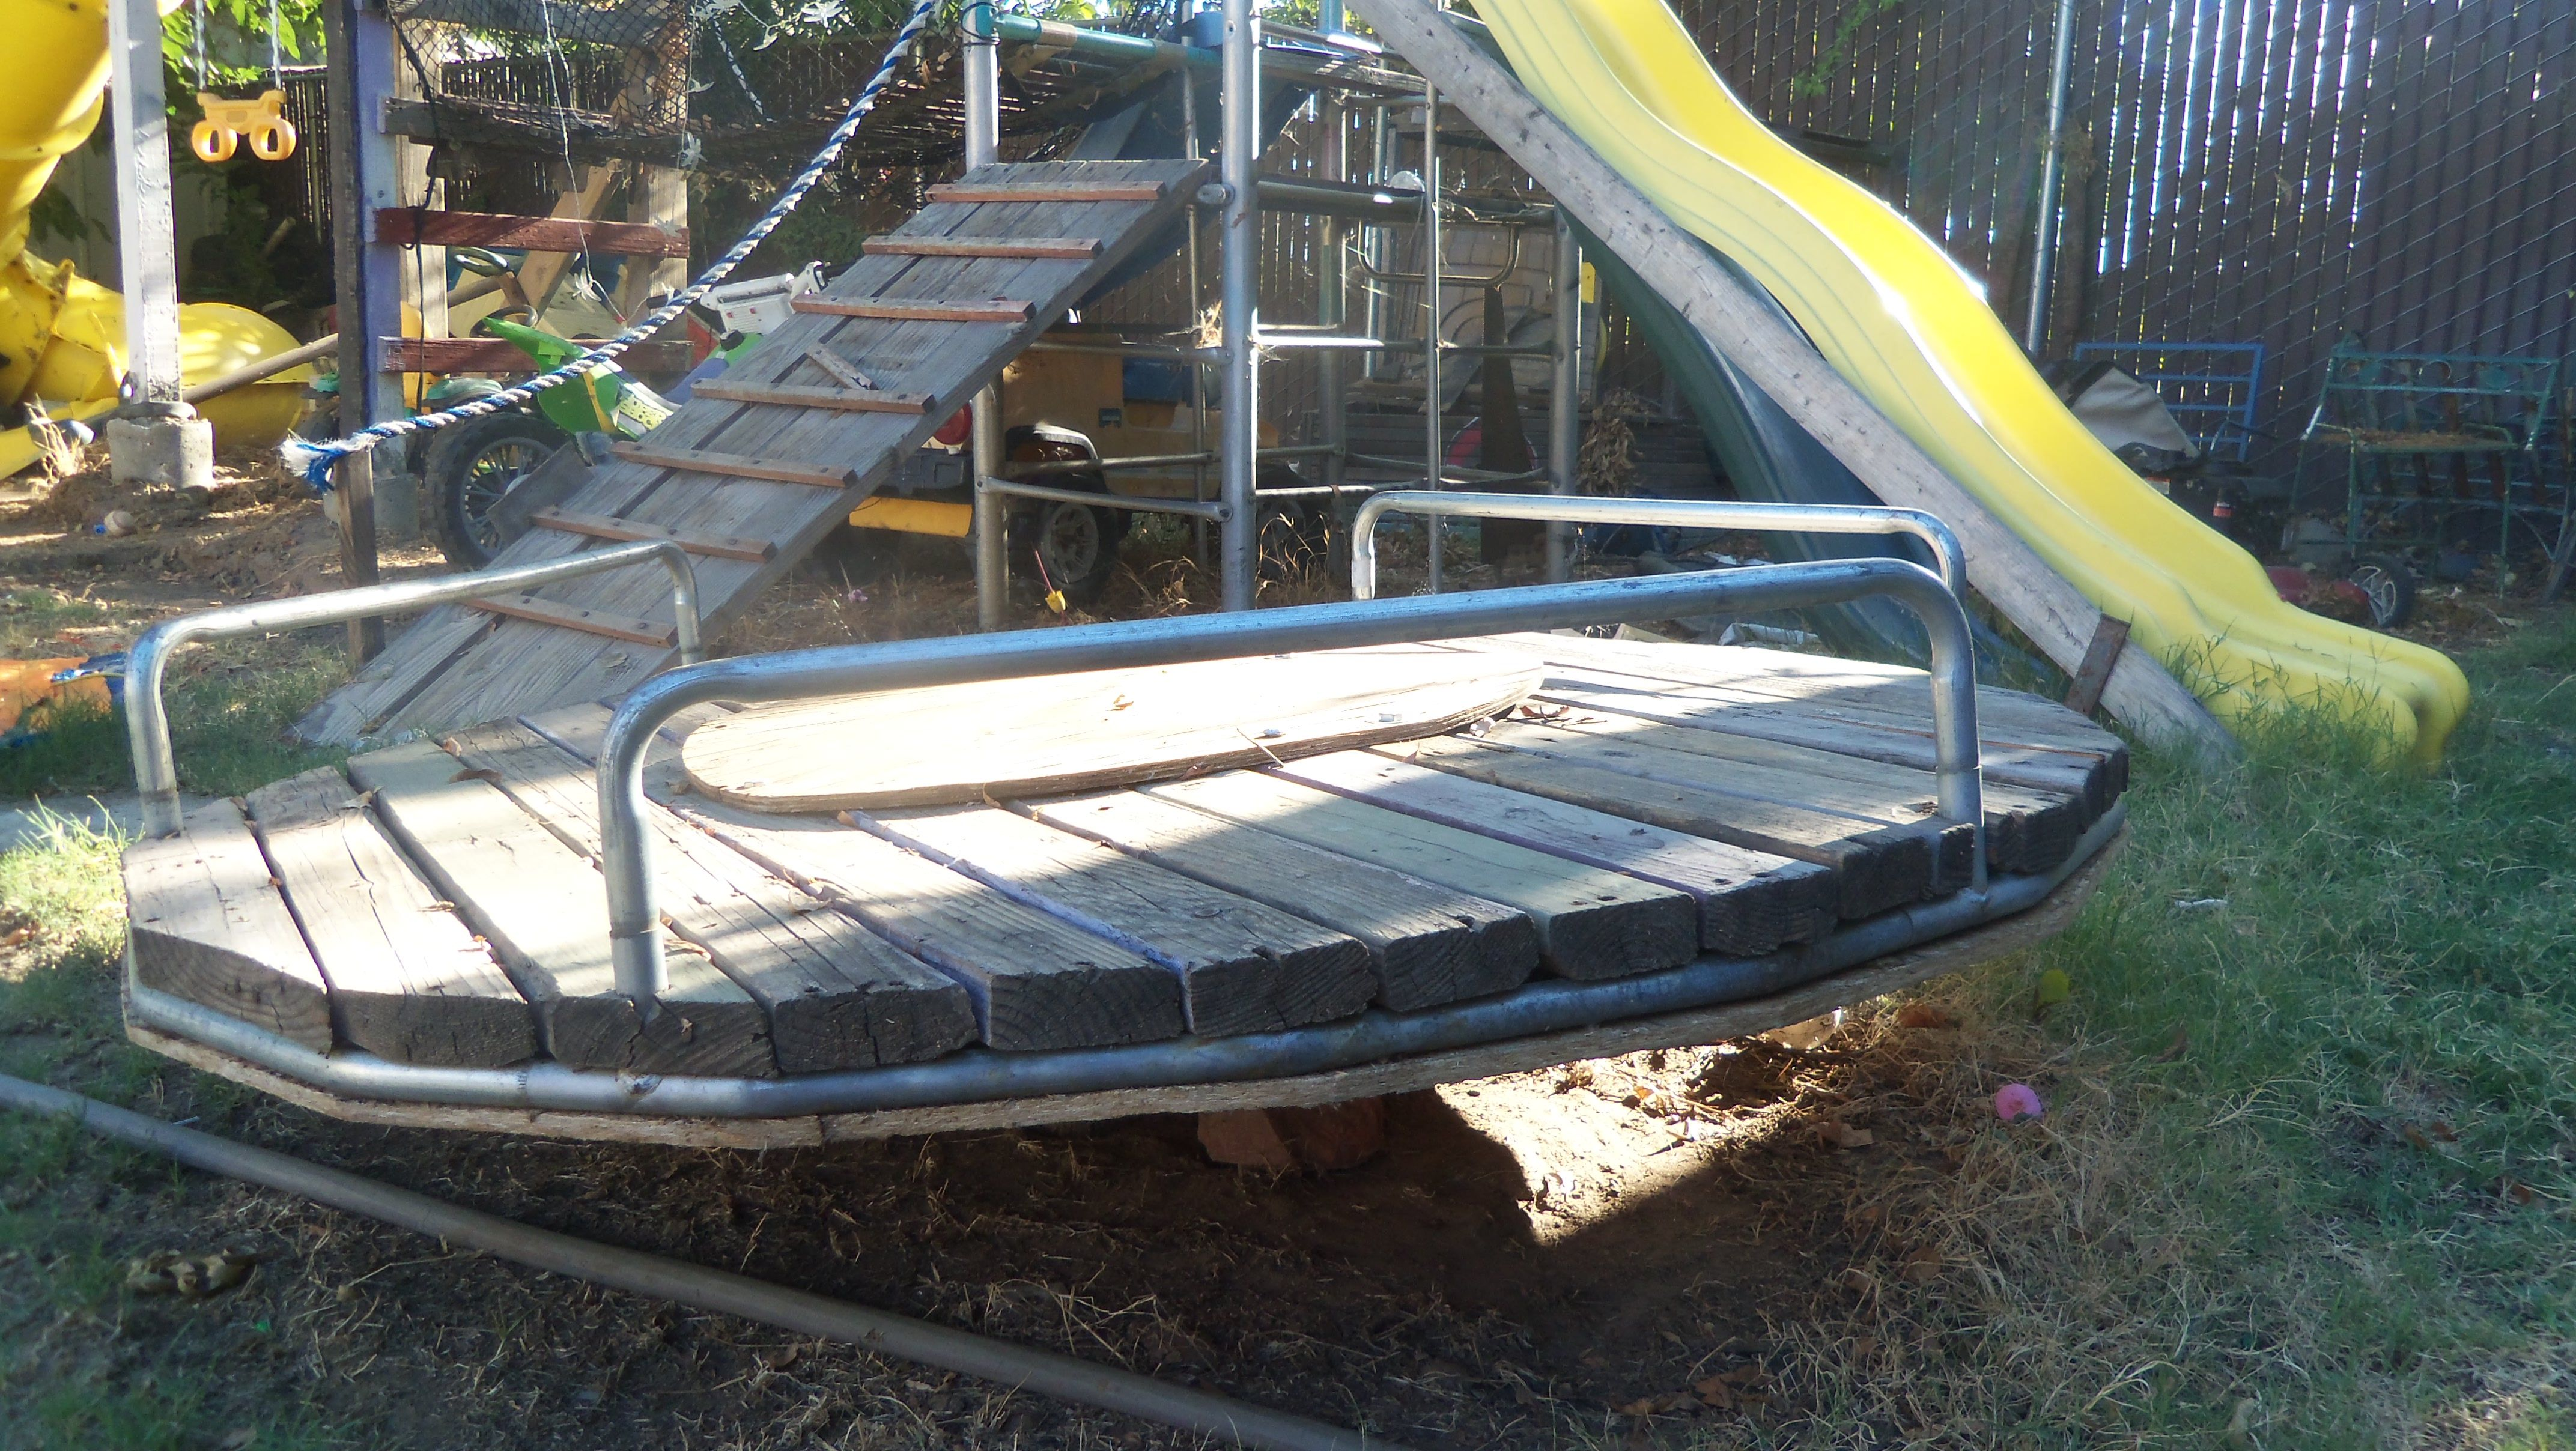 Pin by Dustin West on Recycled | Backyard trampoline, Diy ...